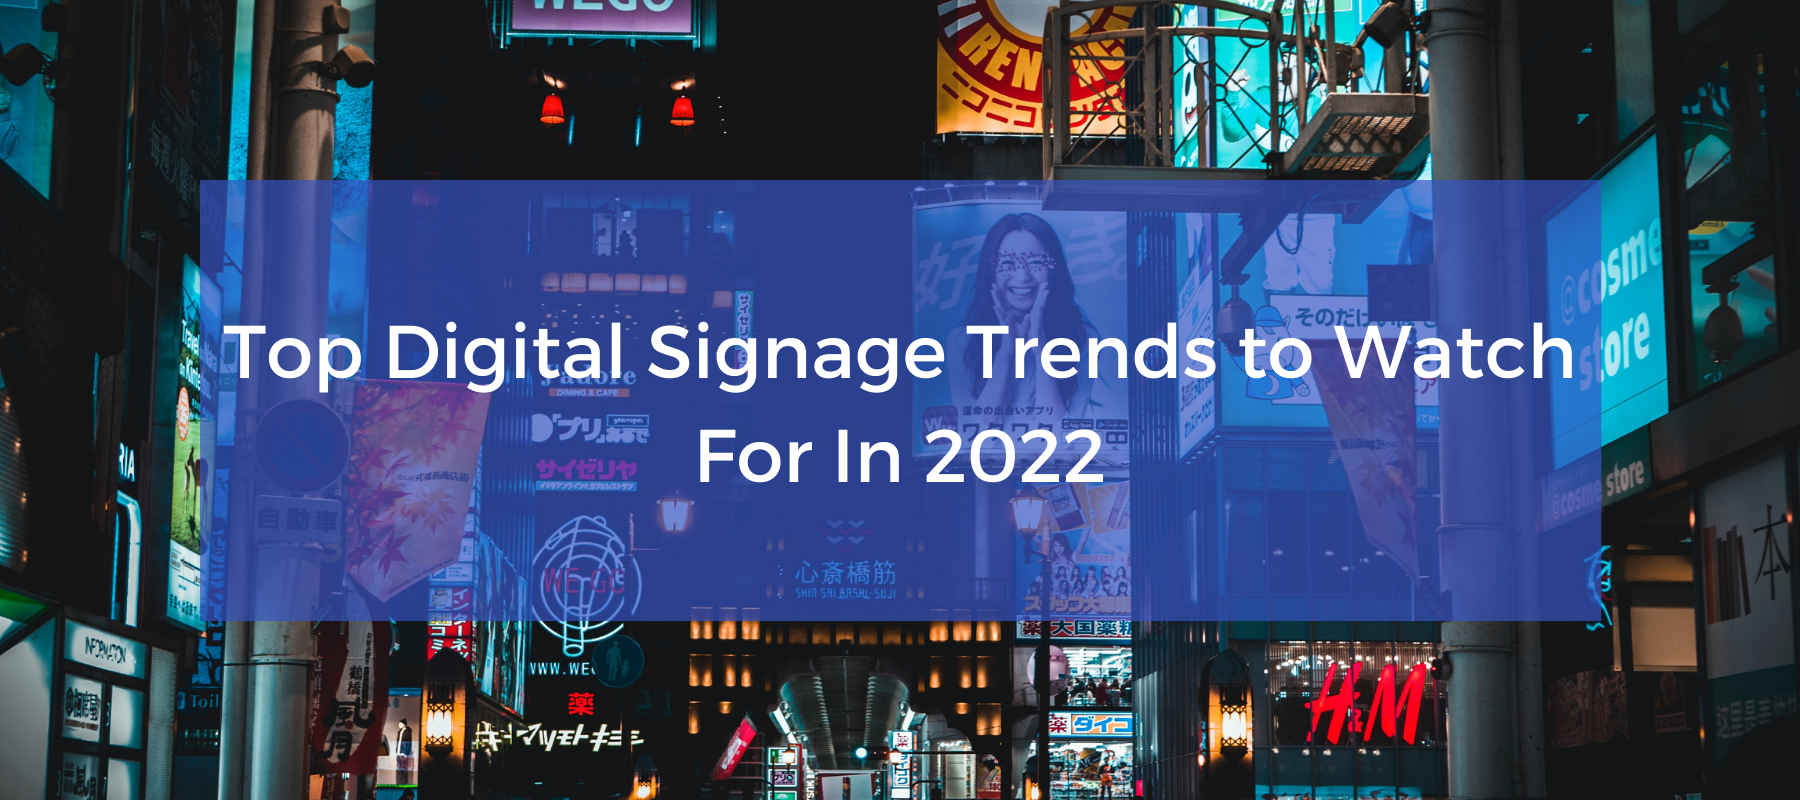 Top Digital Signage Trends to Watch For In 2022 Featured Image